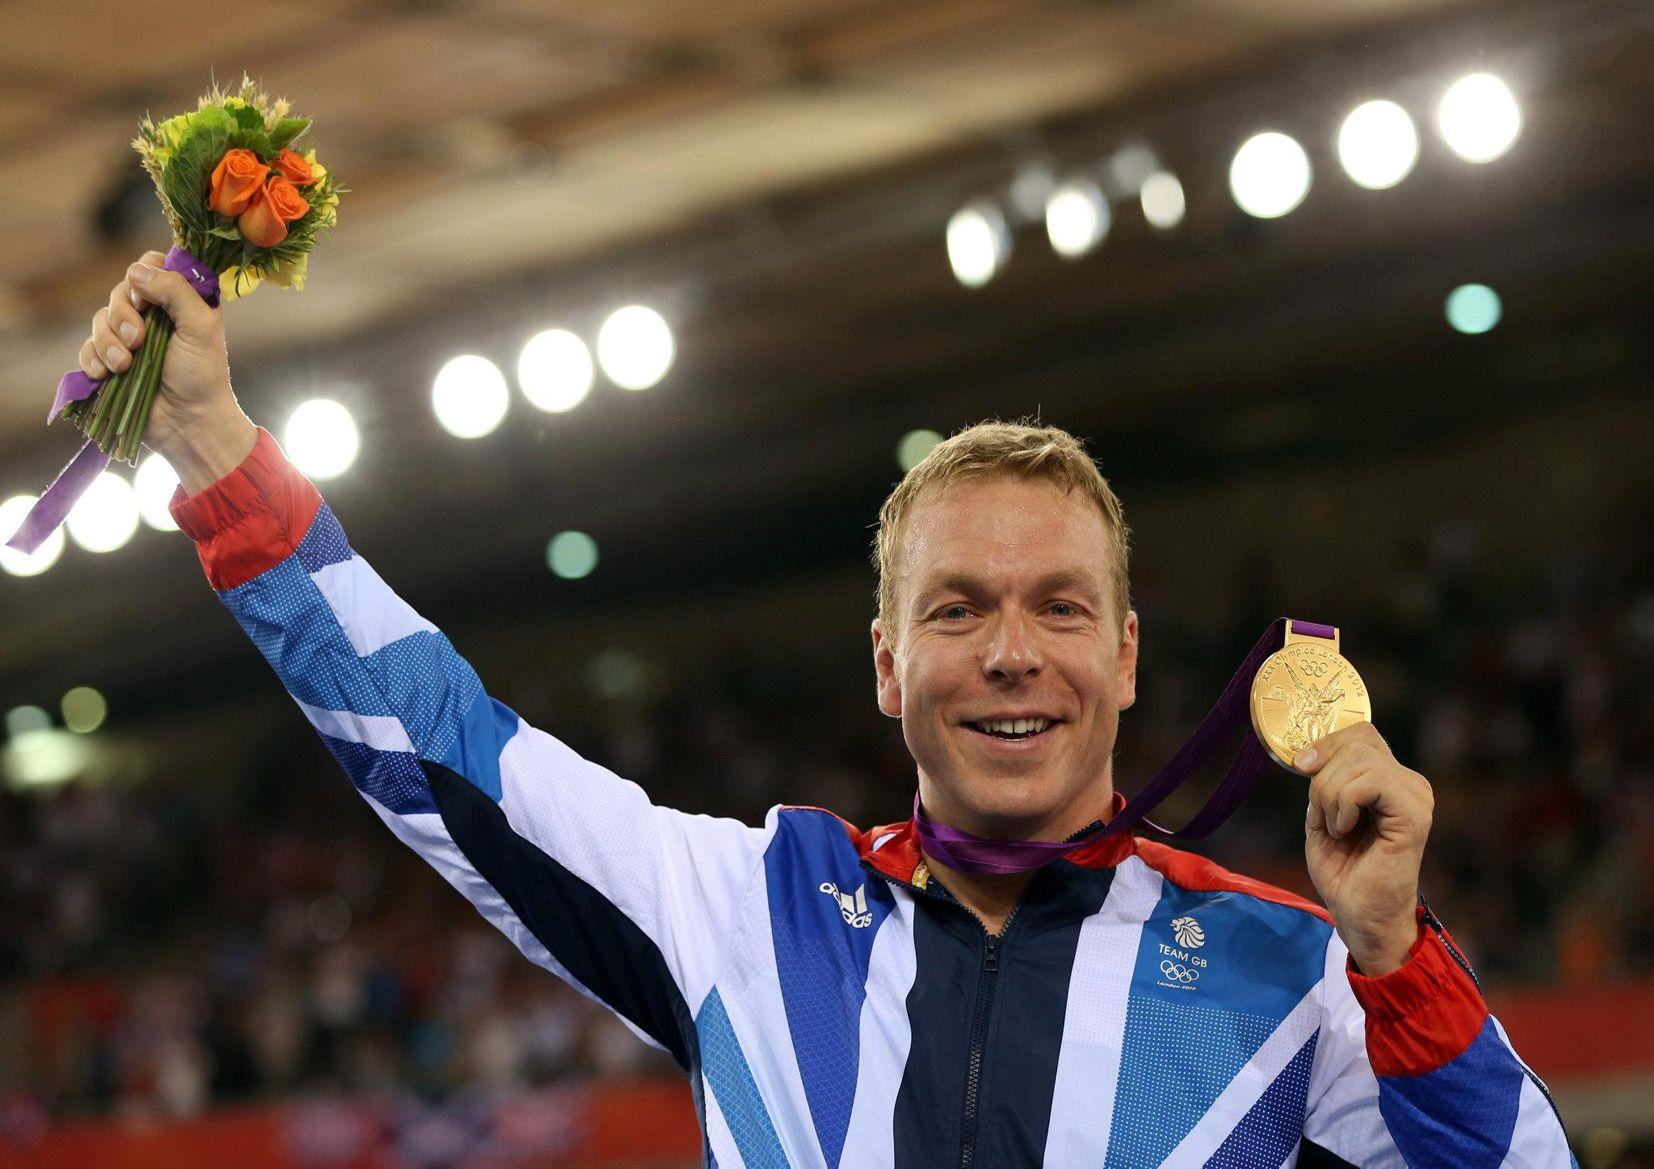 Sir Chris Hoy | Gambar : Chrishoy.com